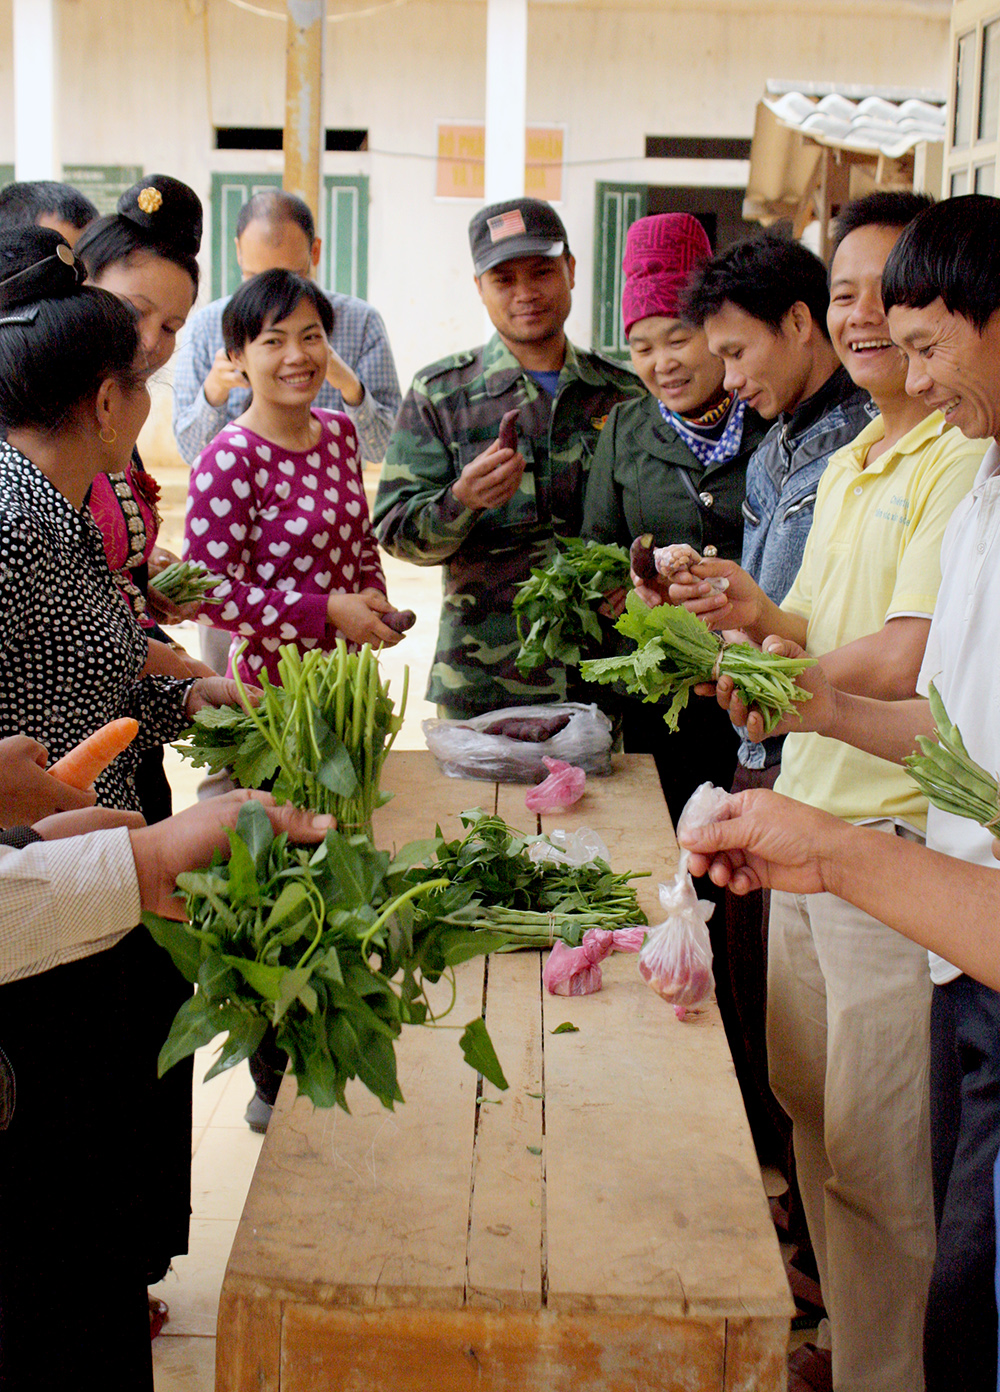 Through diversity clubs, communities in the Mai Son district of Vietnam were encouraged to have a more diversified production of underutilized species, including nutritious dark green leafy vegetables. Credit: Bioversity International/J. Raneri